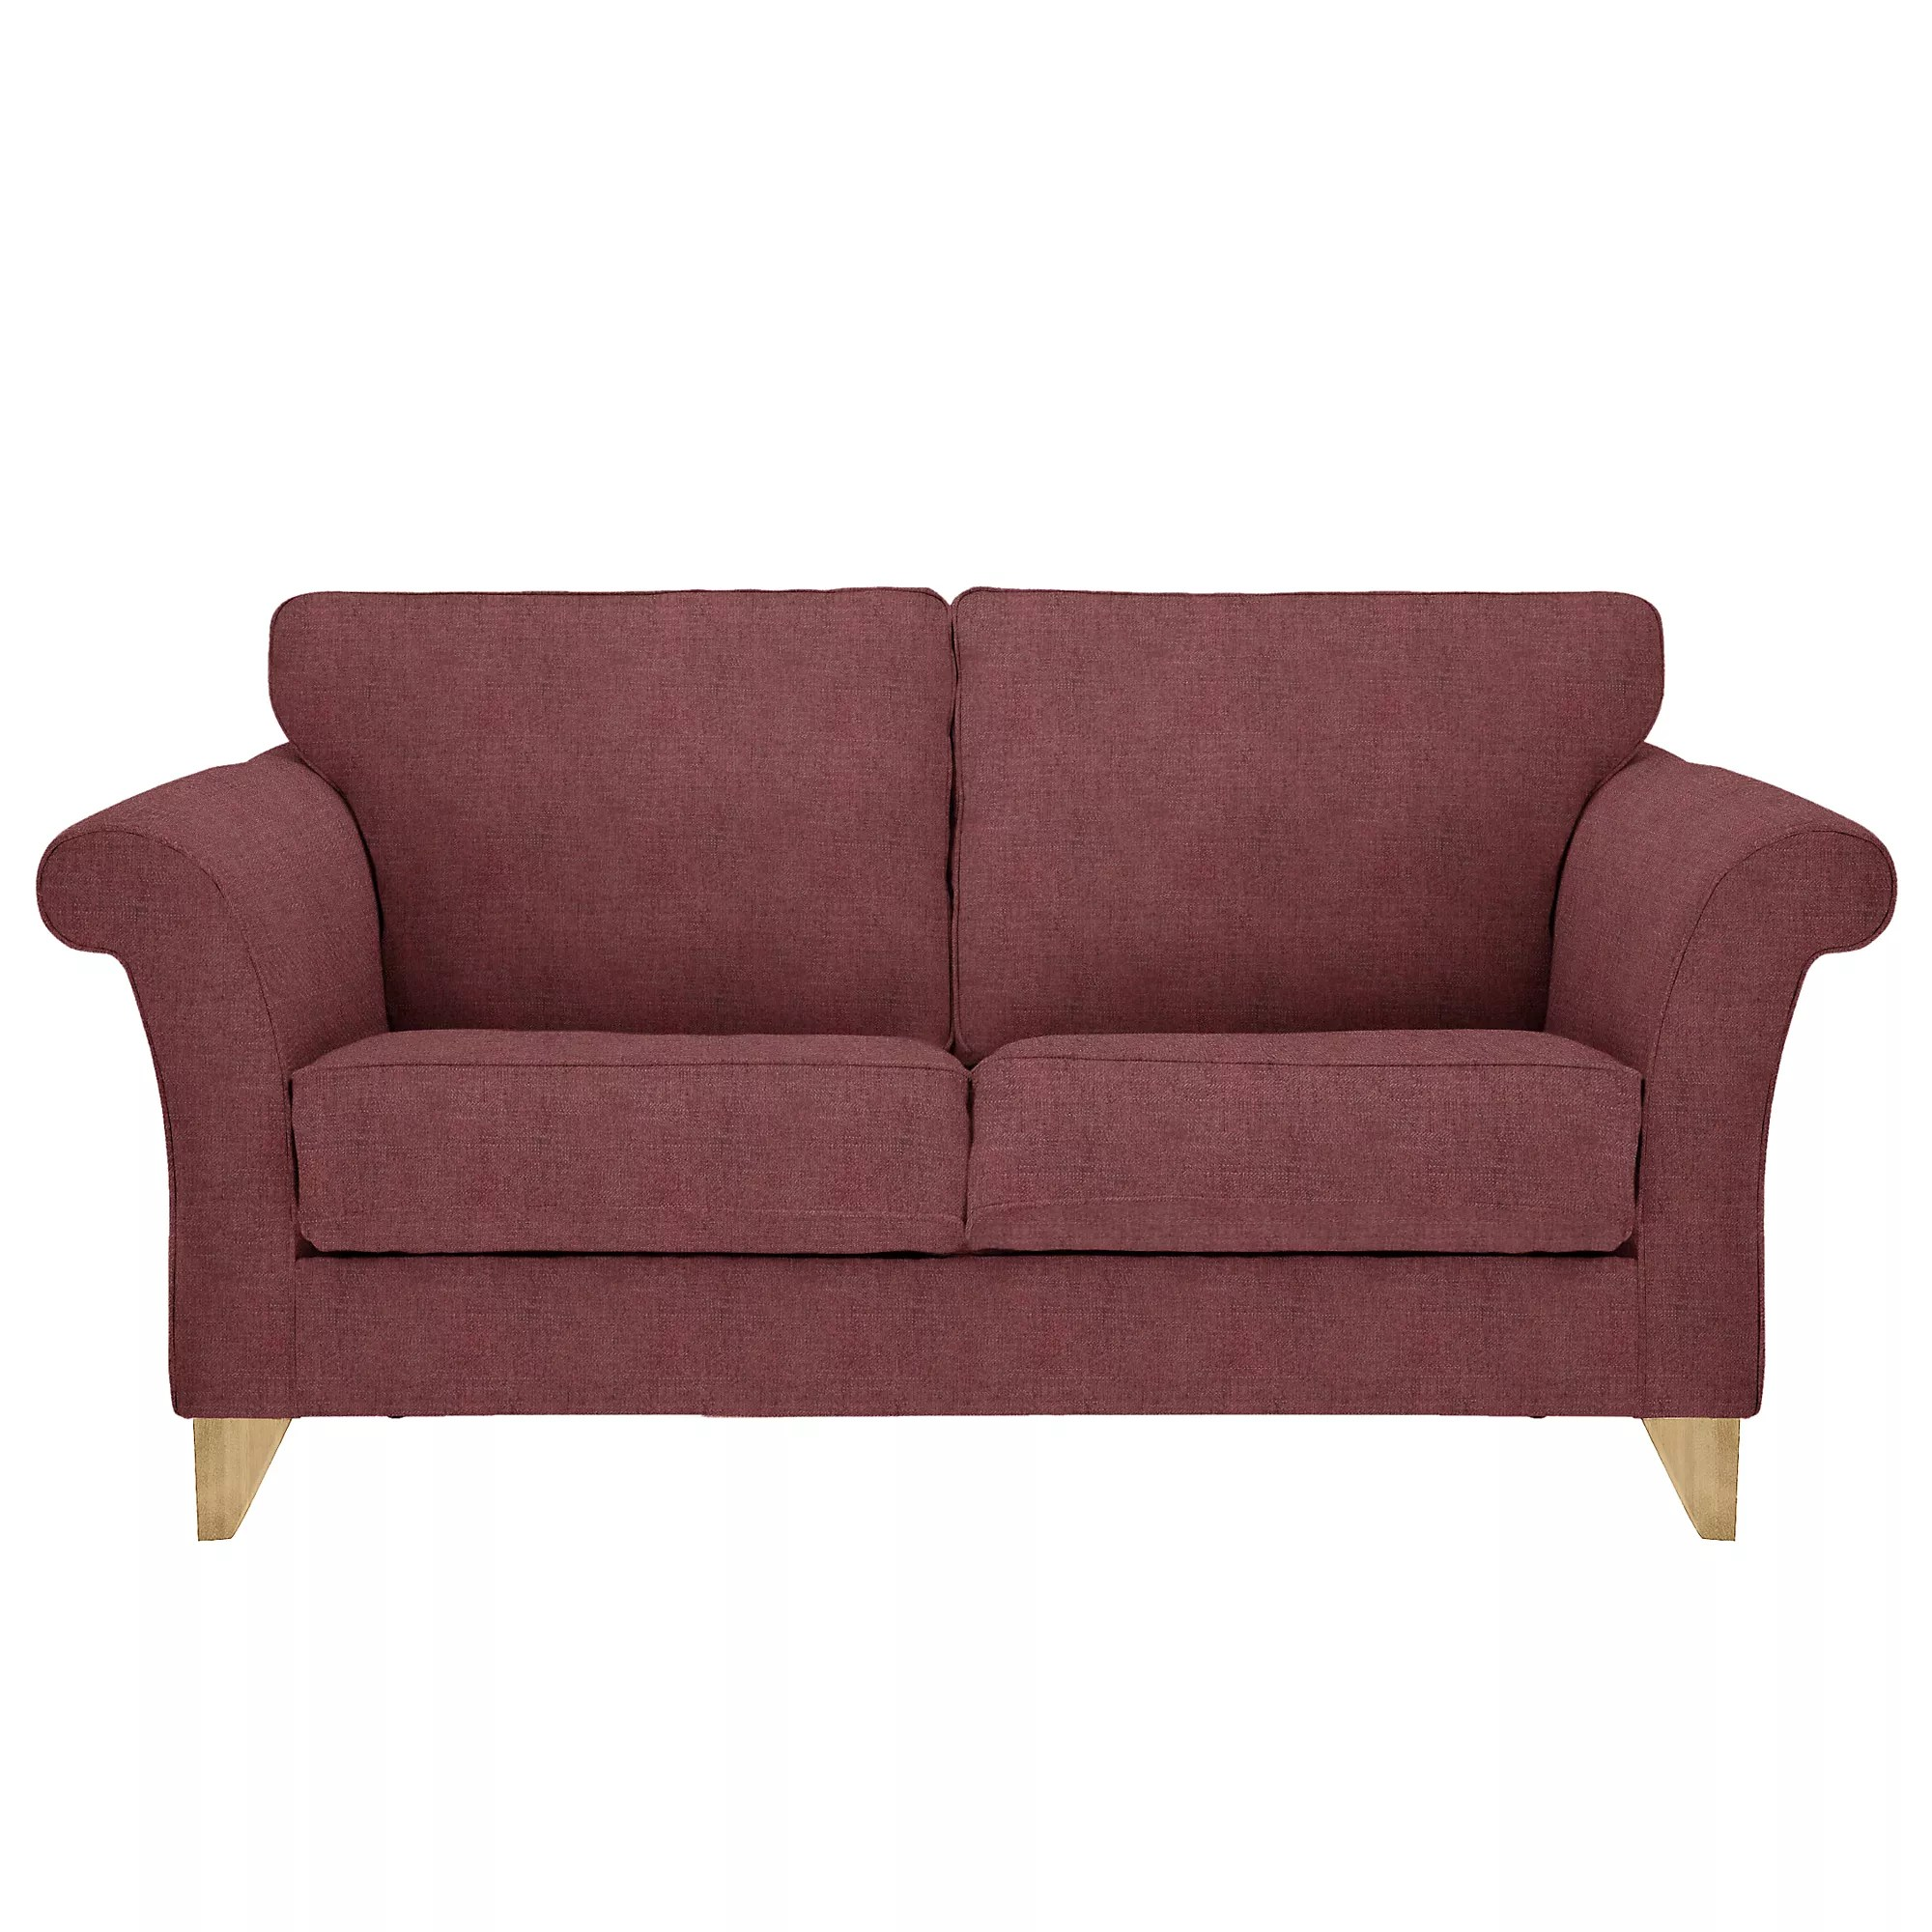 refilling sofa cushions sectional sofas with removable slipcovers cushion restuffing london exotic